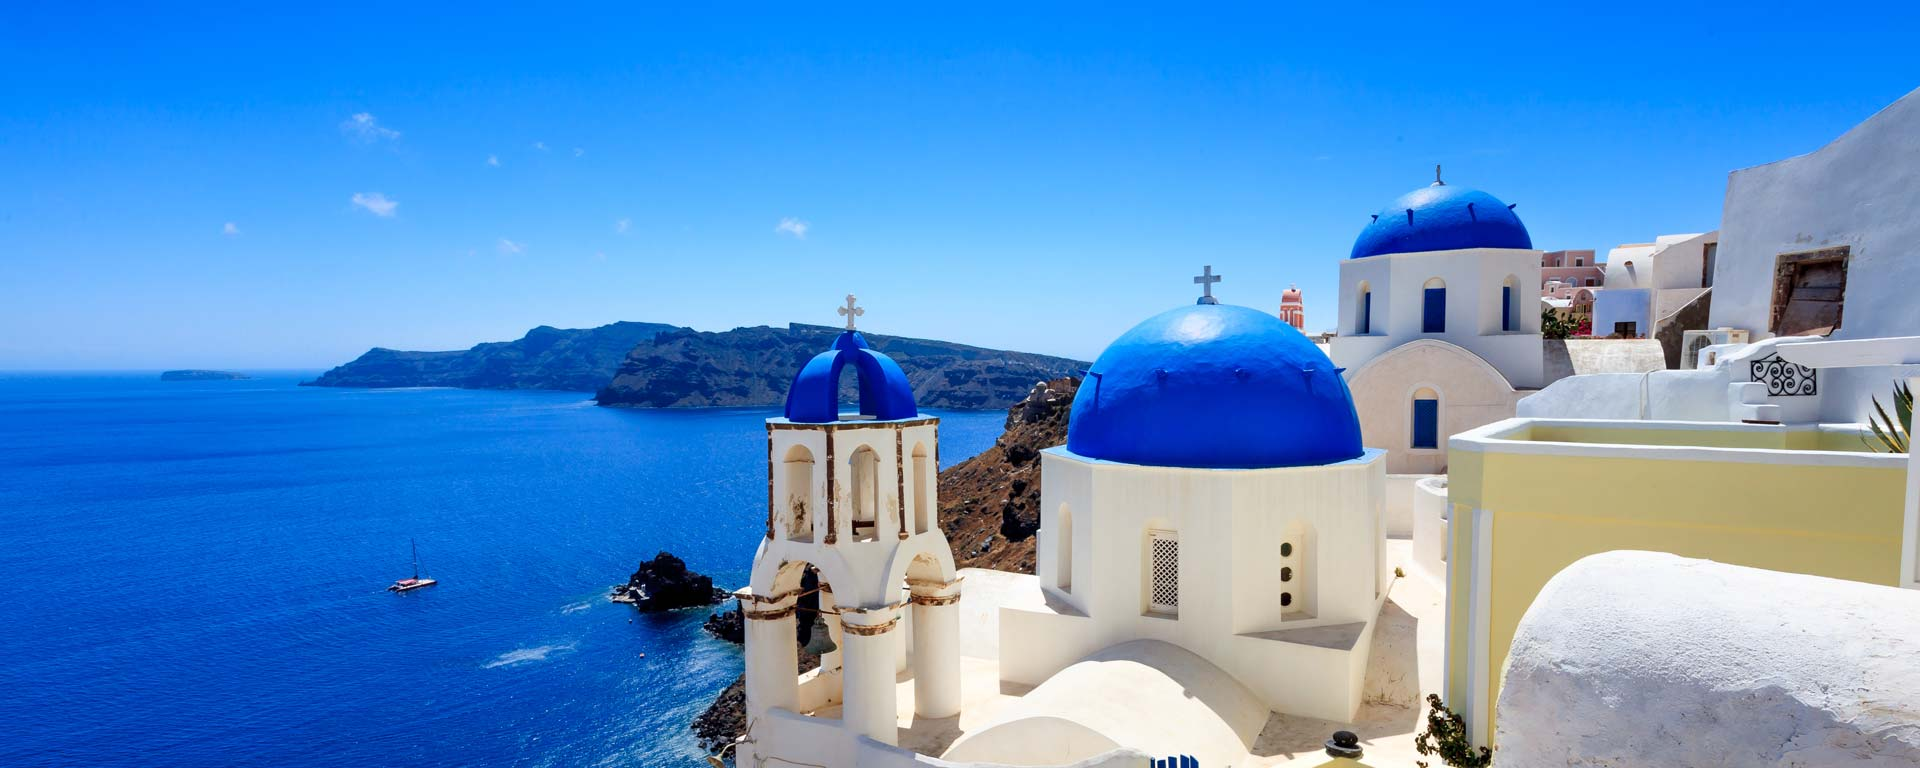 Santorini island, Cyclades, Greece